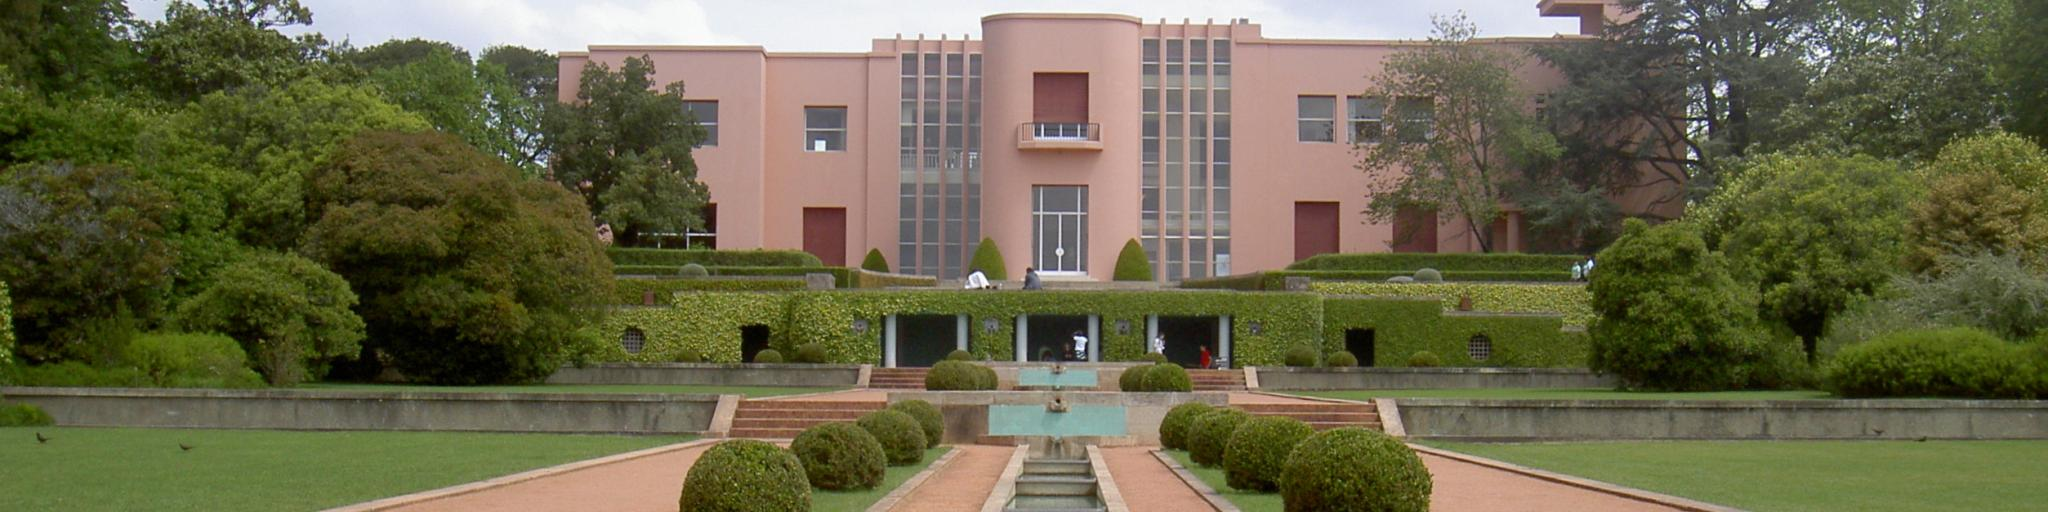 A walkway leading up to the distinctive pink Casa de Serralves, built in art deco style in Porto